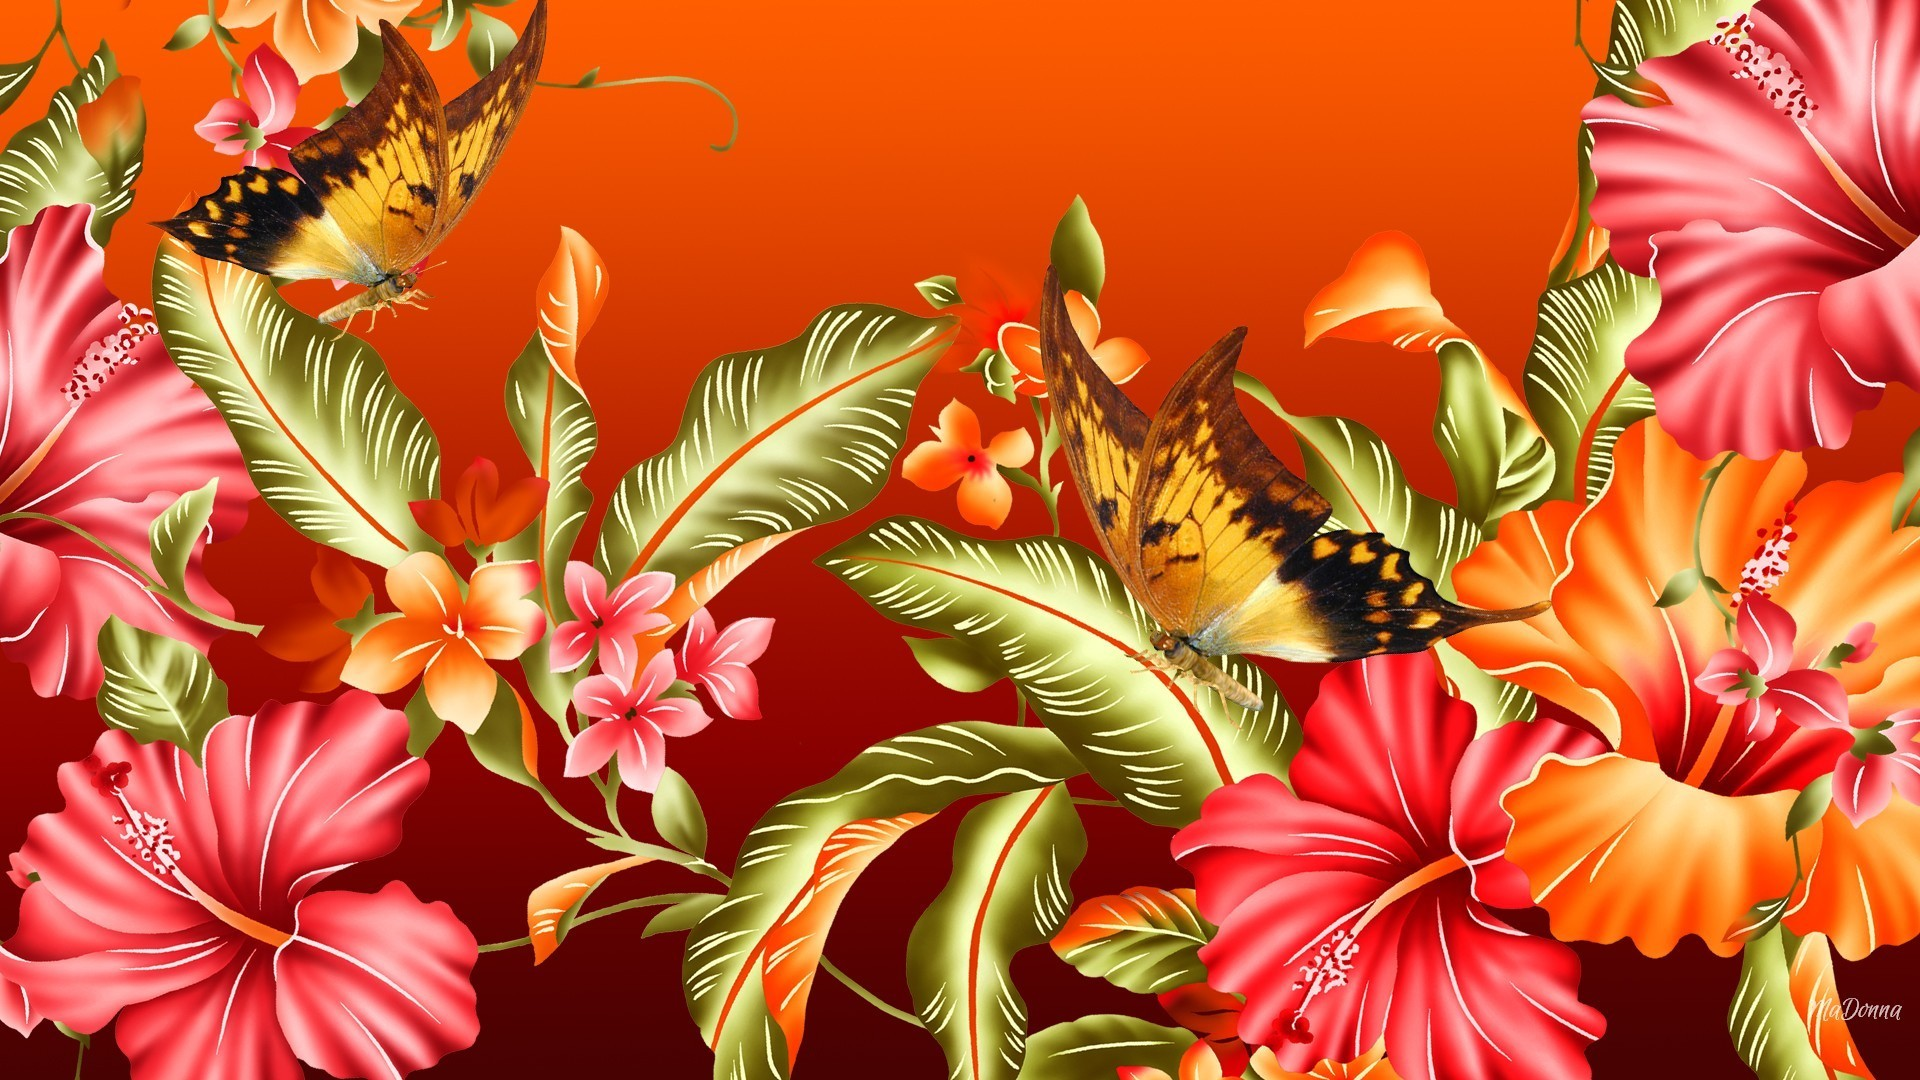 Res: 1920x1080, Leaves Butterflies Bright Flowers Summer Spring Hibiscus Glorious Flower  Wallpapers Mac